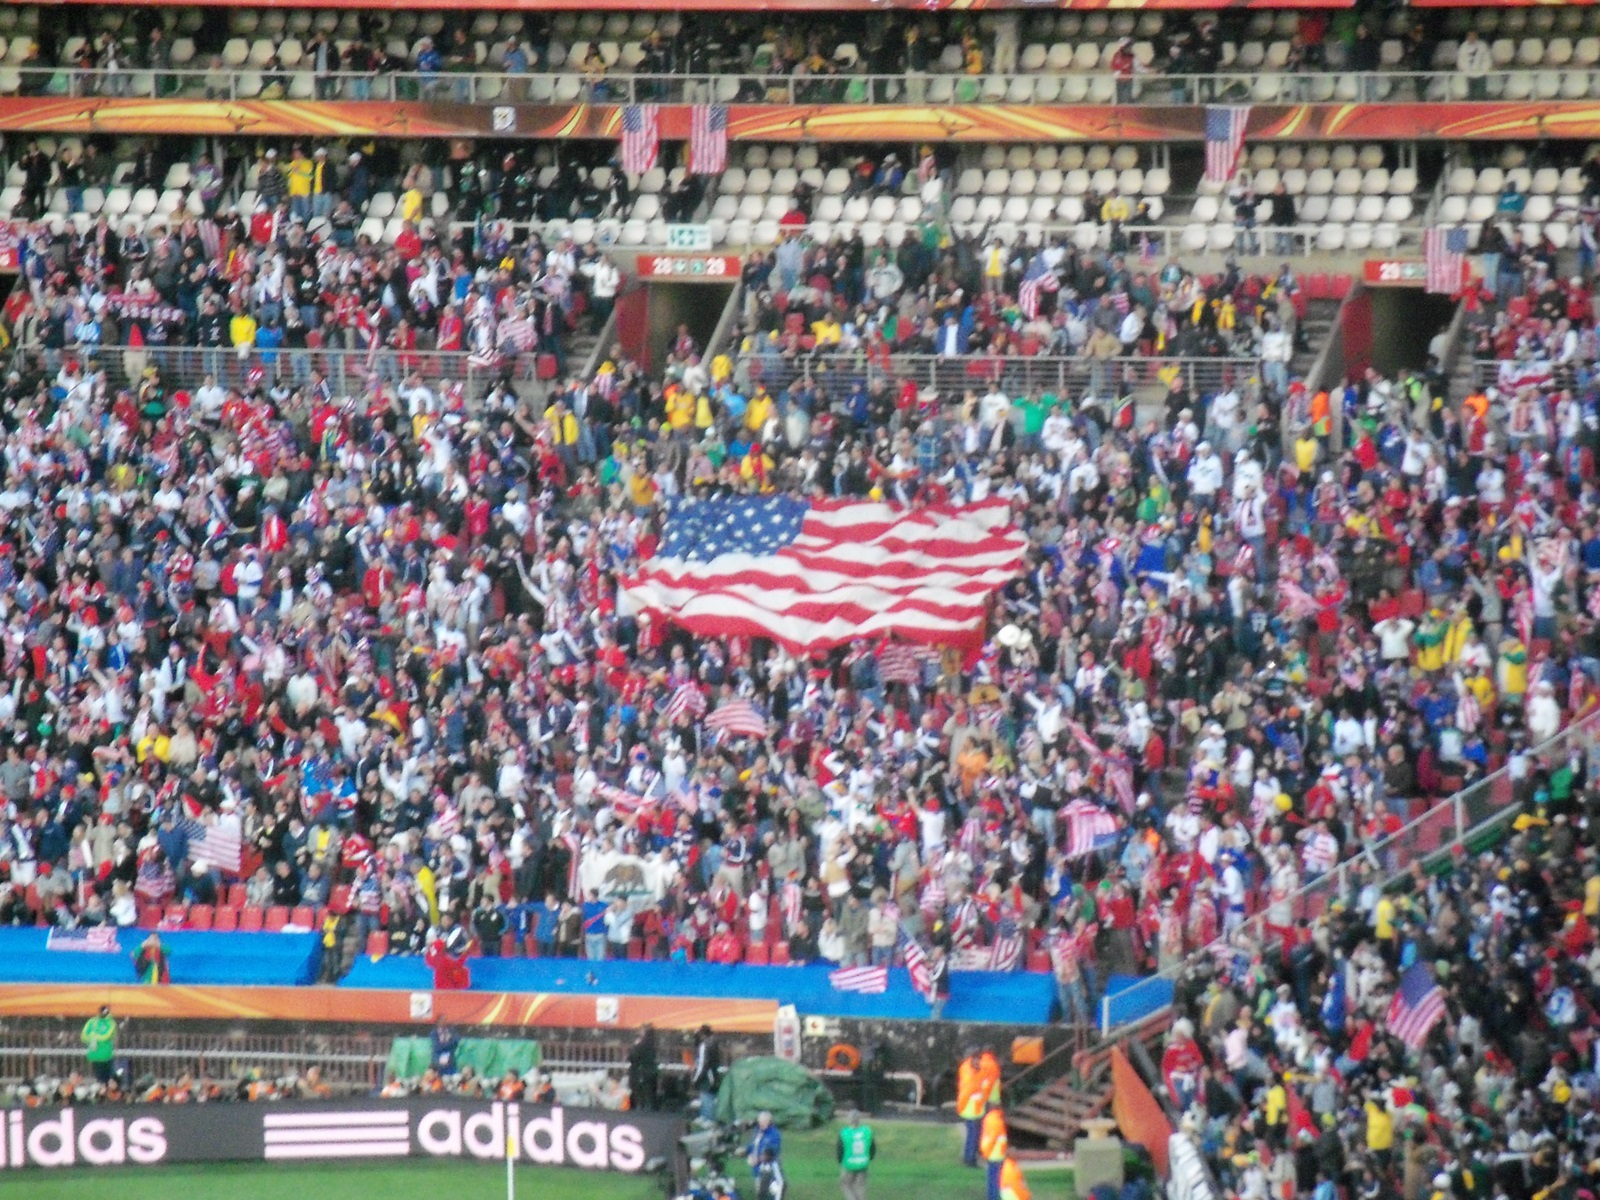 File:Slovenia - USA at FIFA World Cup 2010, tribunes.jpg